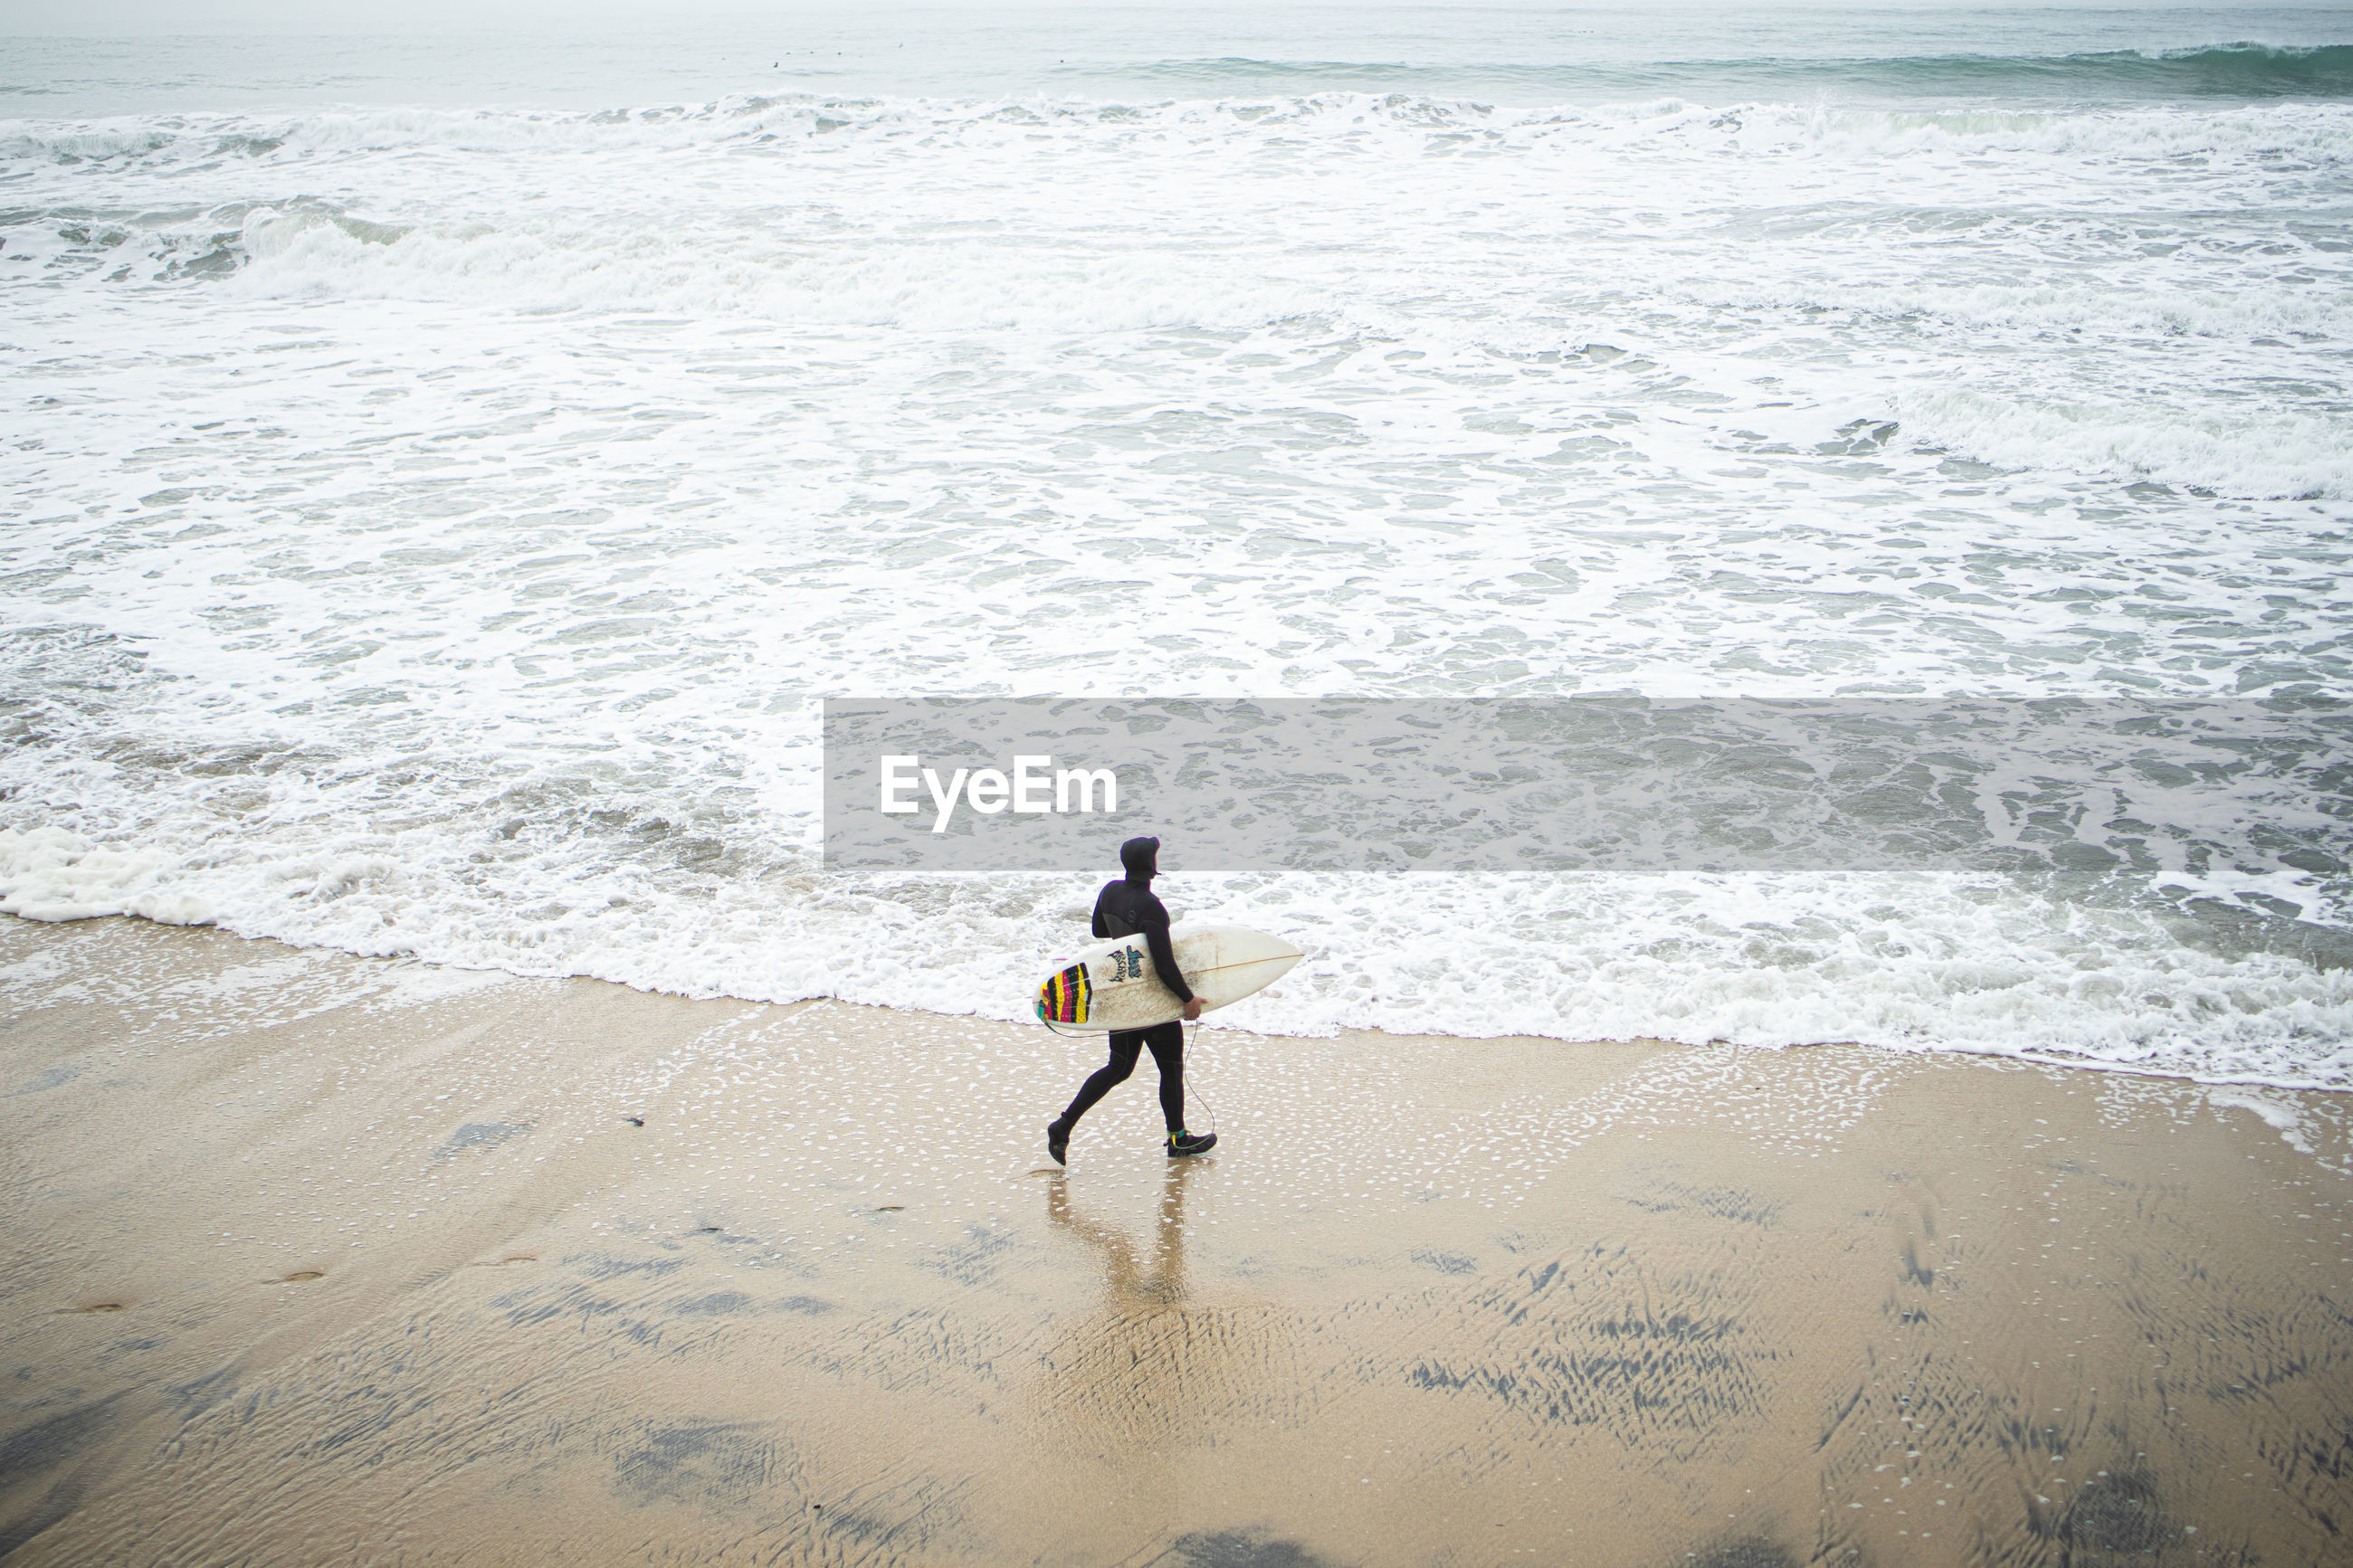 REAR VIEW OF PERSON ON BEACH